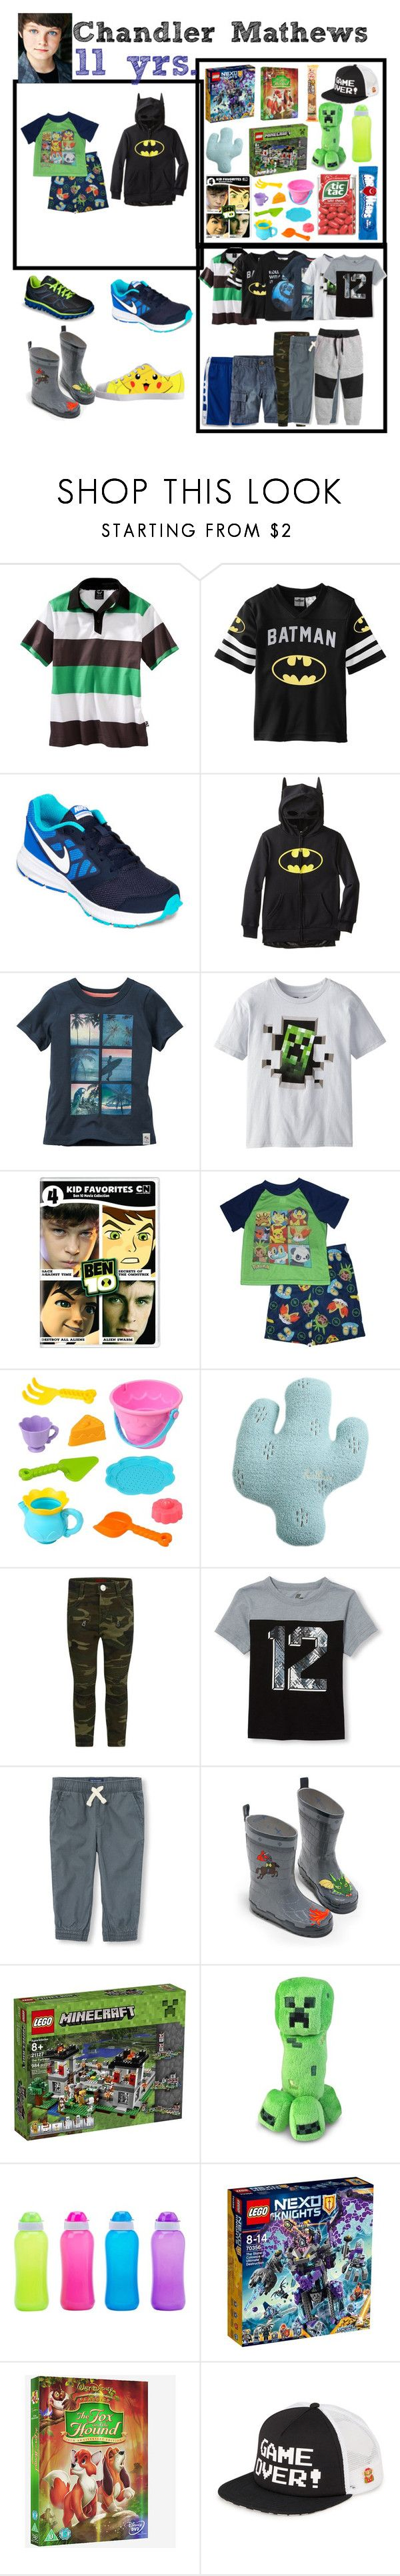 """""""Chandler(11)"""" by laylaitaly ❤ liked on Polyvore featuring C9 by Champion, NIKE, Canterbury, Cartoon Network, Minecraft, KIDORABLE and Vans"""